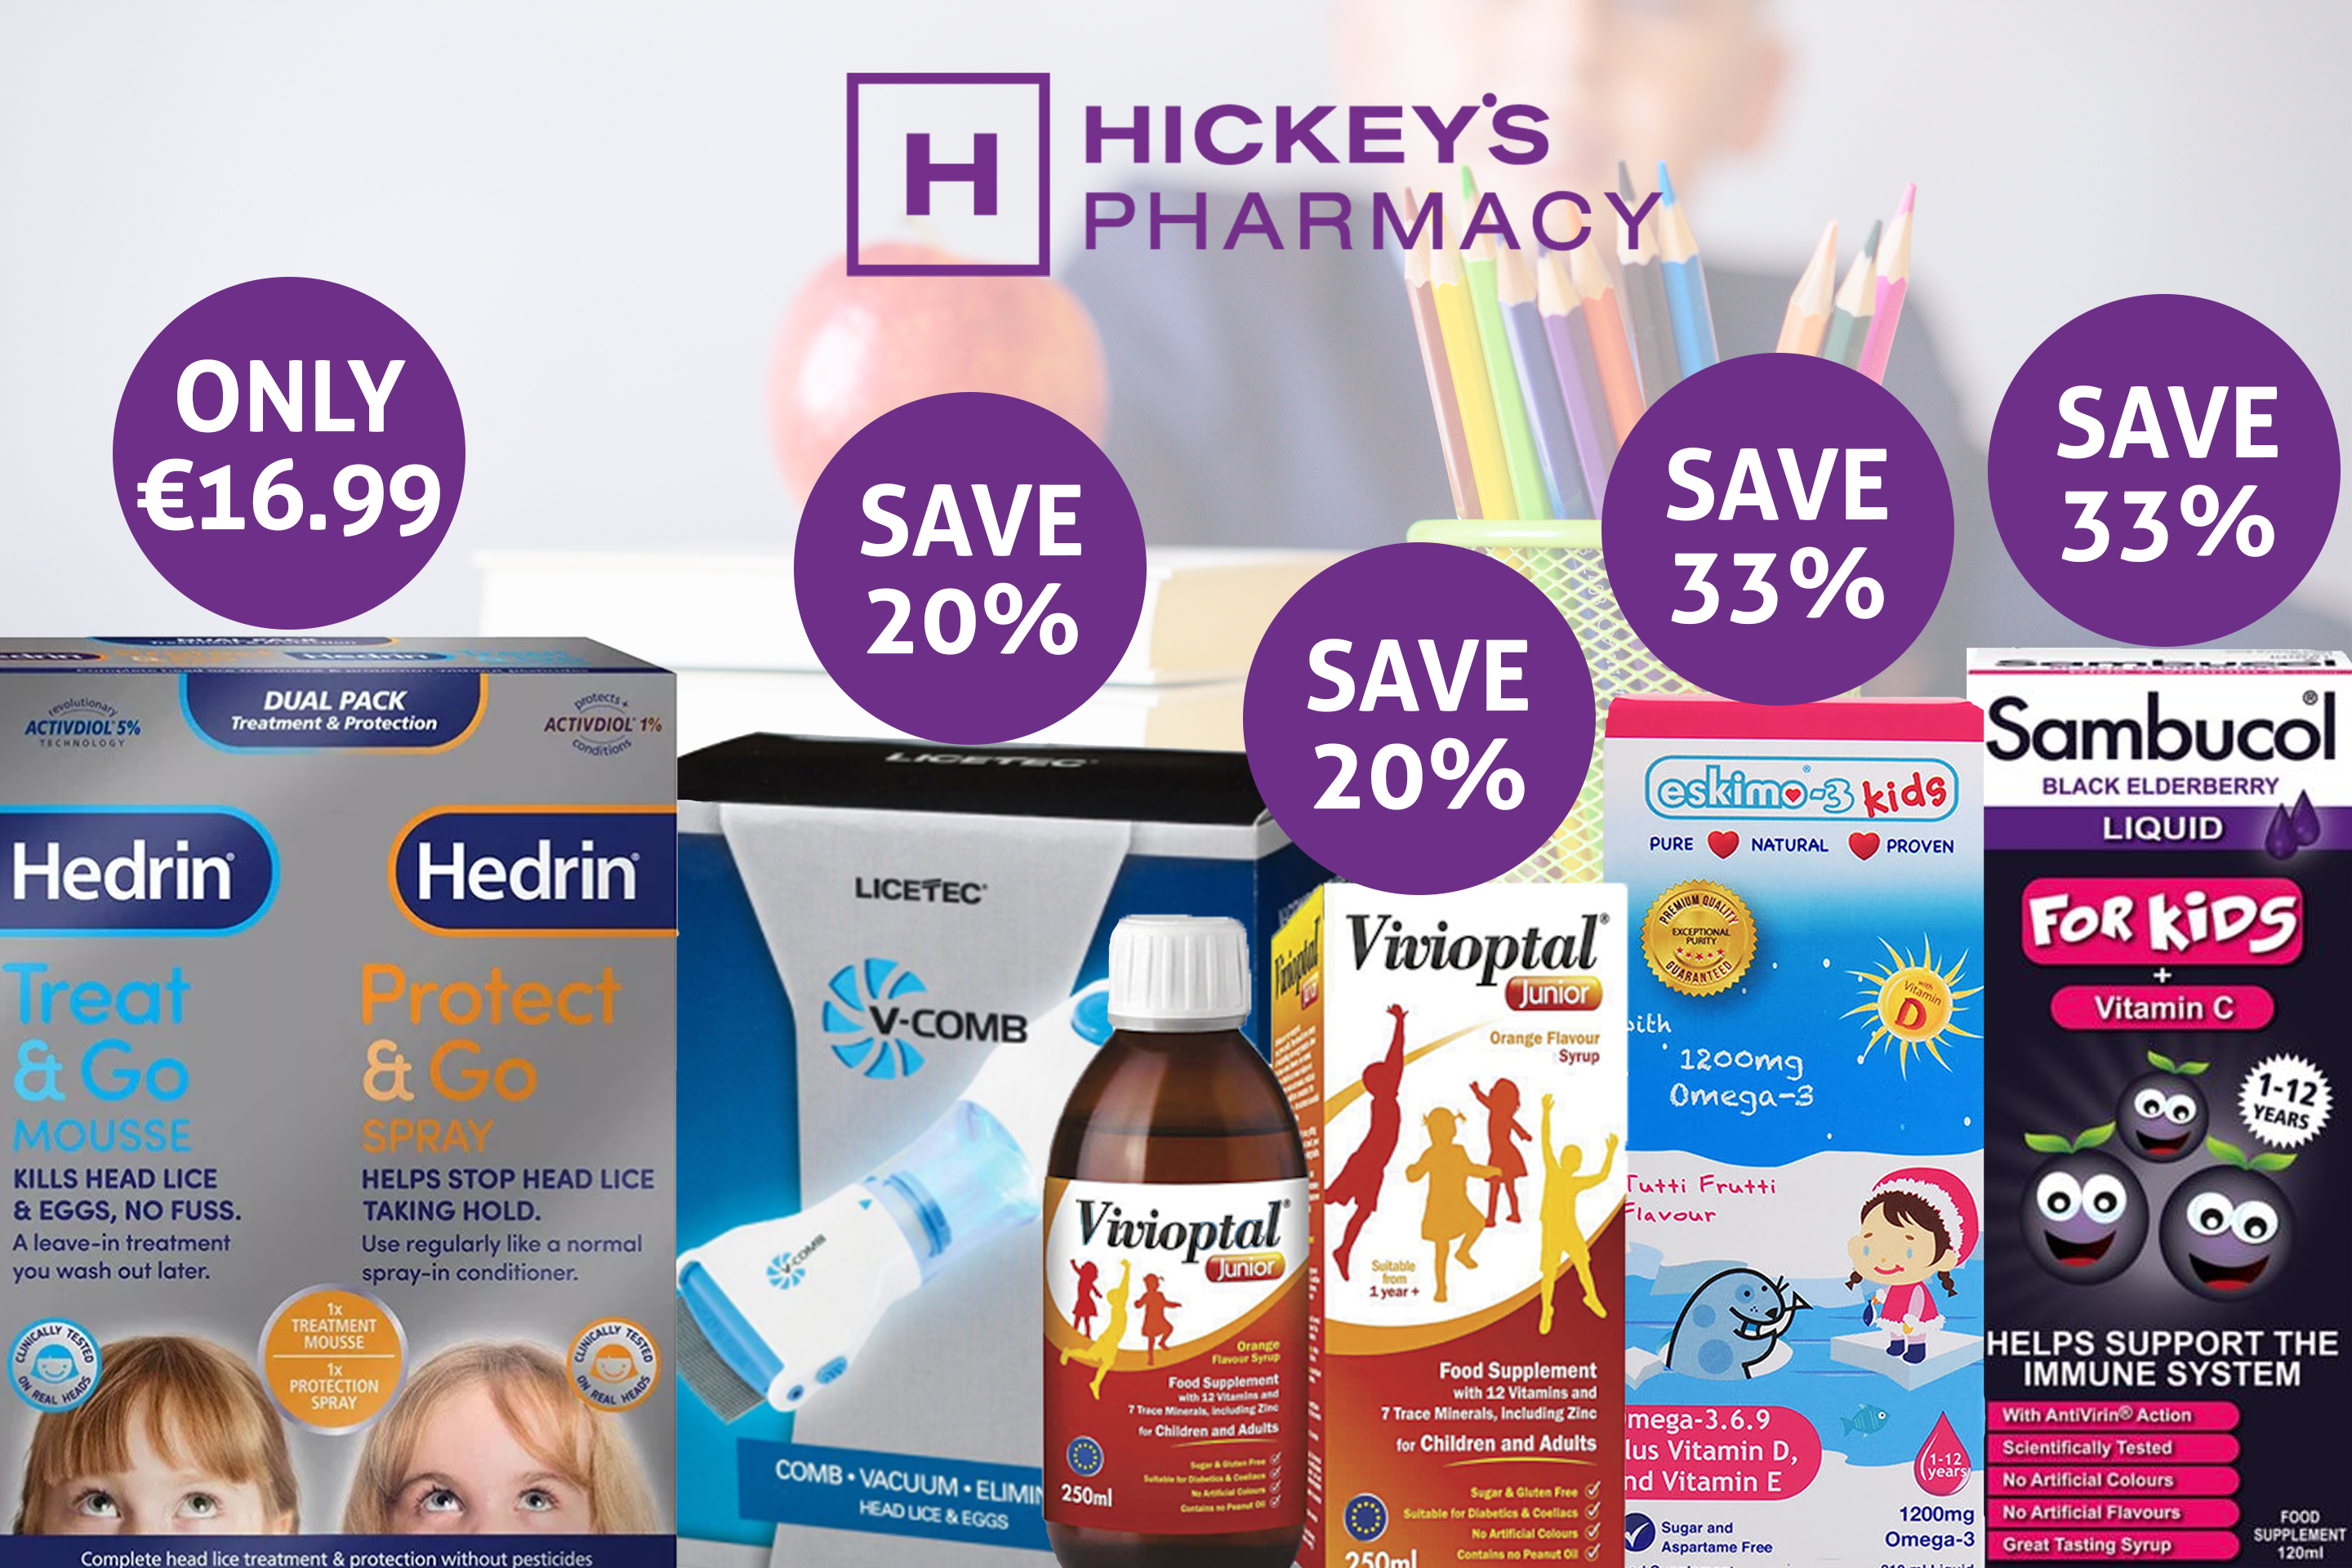 Hickey's Pharmacy can help your family go back to school with their Pharmacist's recommended vitamins for children, head lice advice and more!